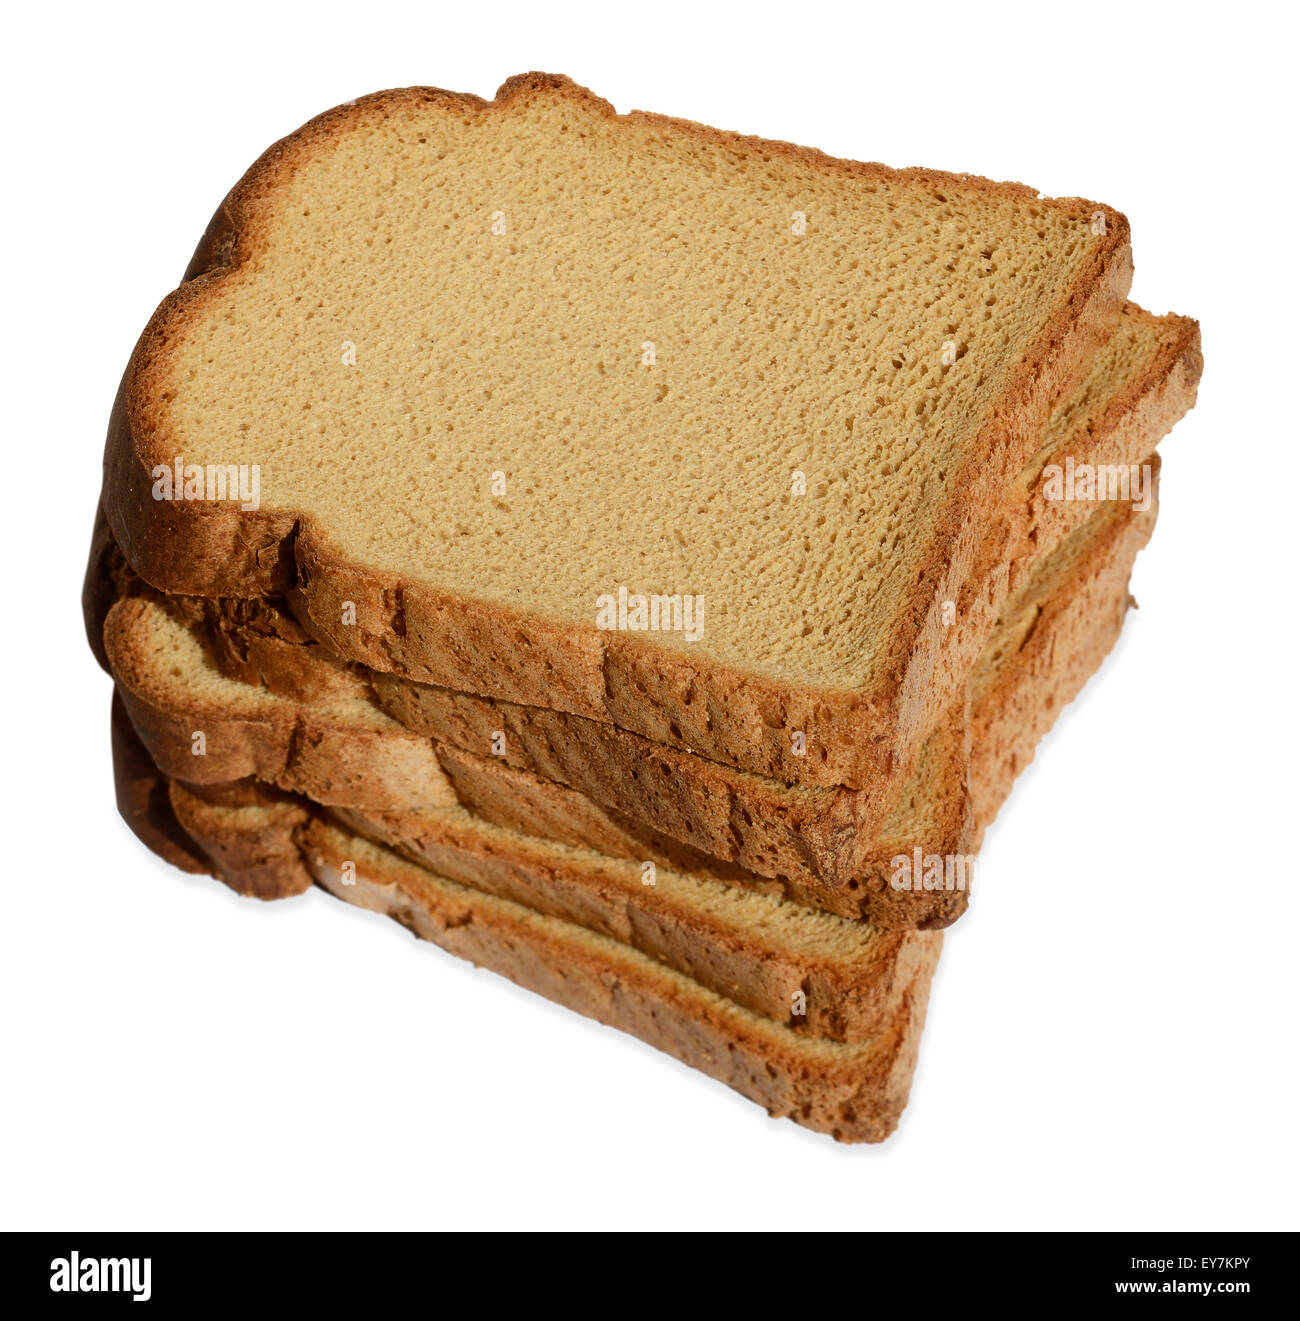 Slices of gluten free wheat free dairy free brown bread - Stock Image